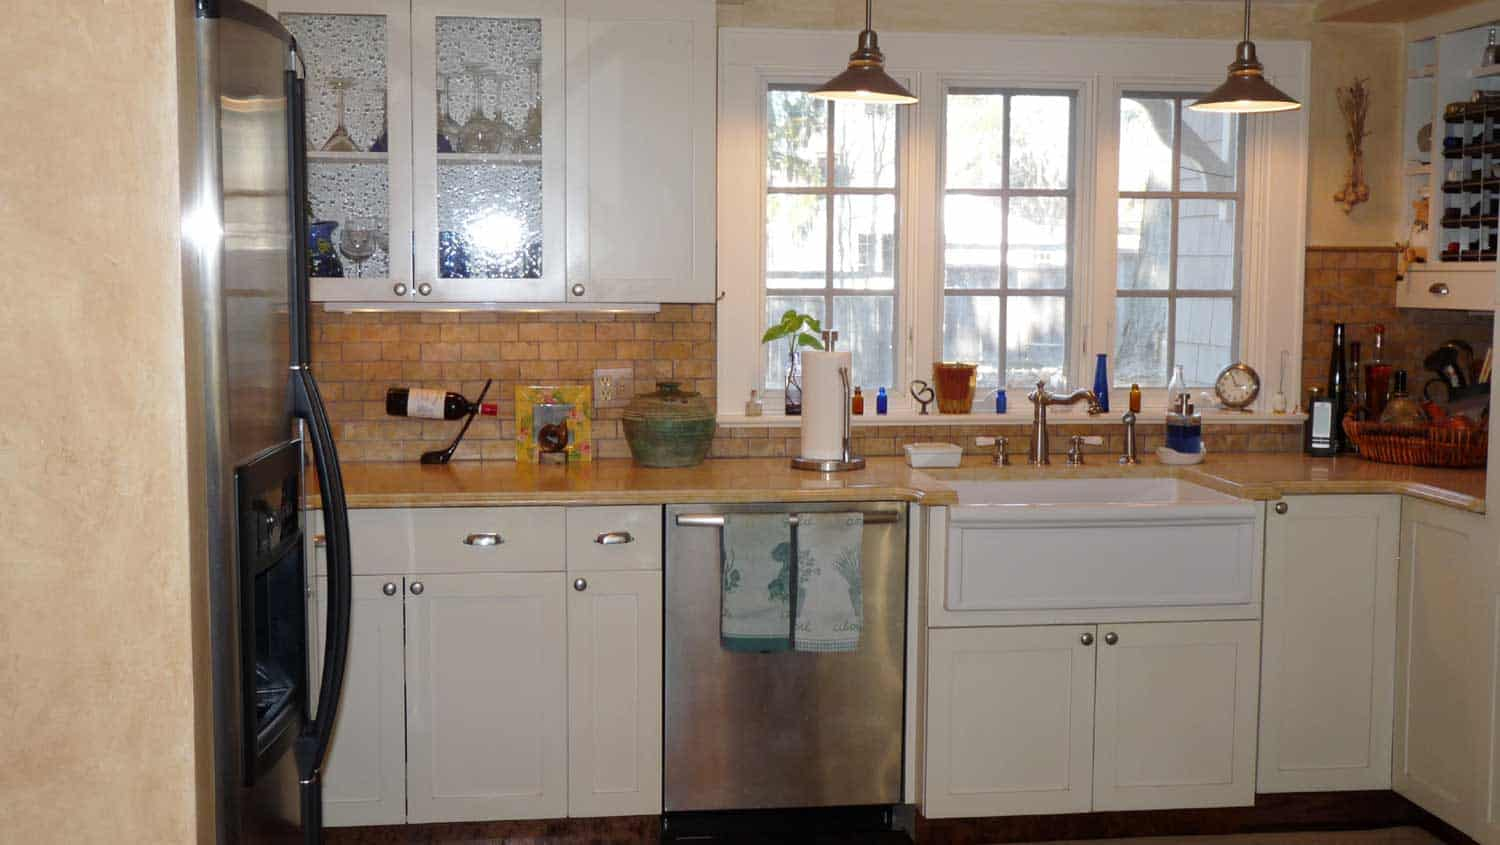 Ordinaire Home Remodel Stamford CT | Kitchen U0026 Bath Remodel Stamford CT